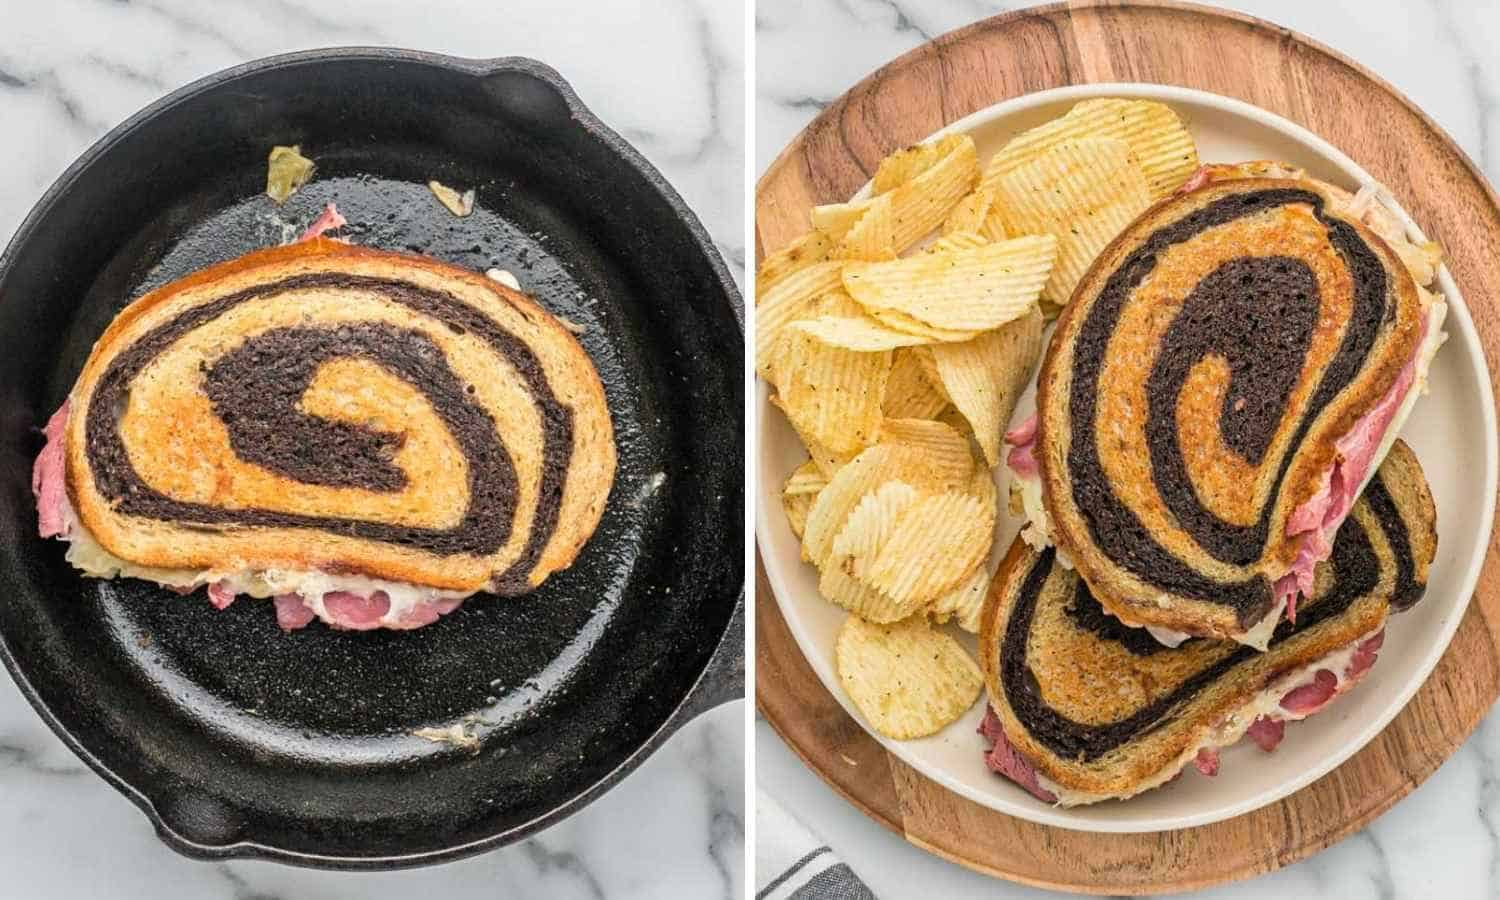 Collage of two images showing how to toast and serve a reuben sandwich